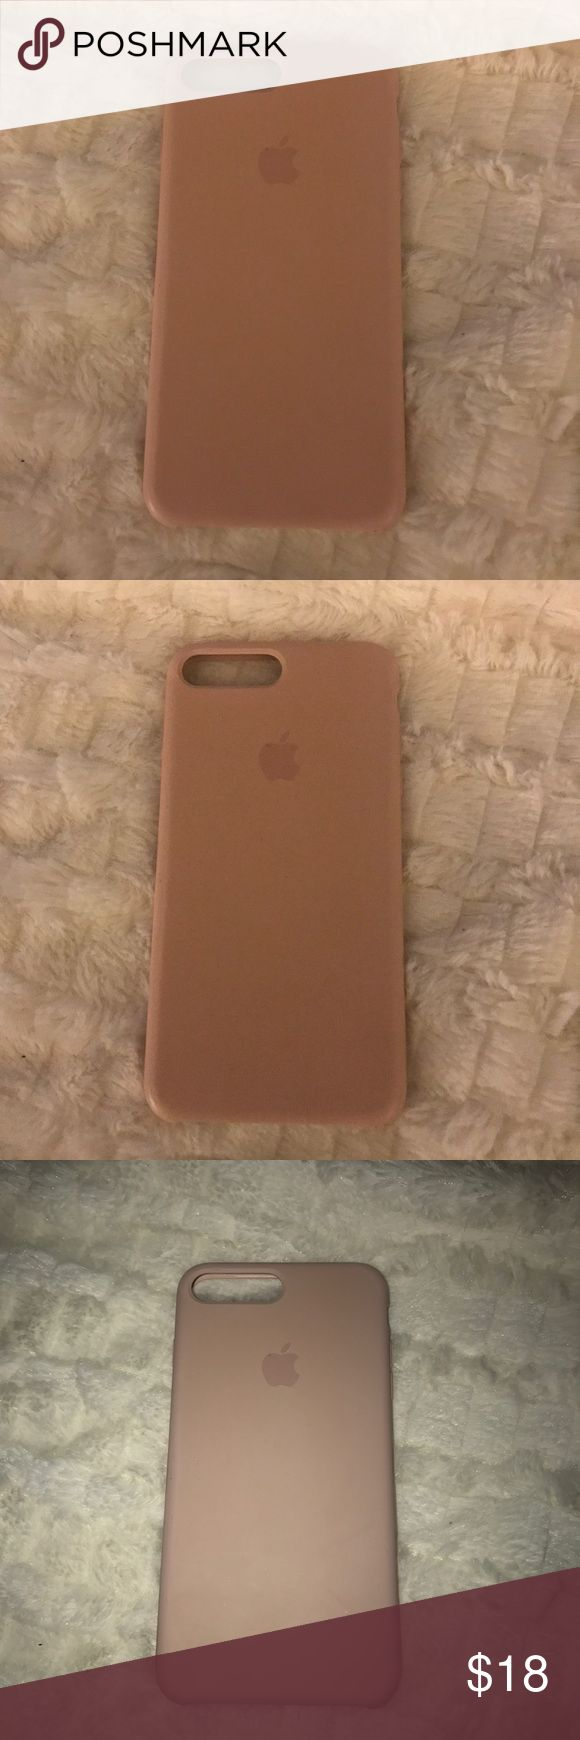 Light Pink APPLE CASE from Apple Store 7/7s PLUS Apple Accessories Phone Cases